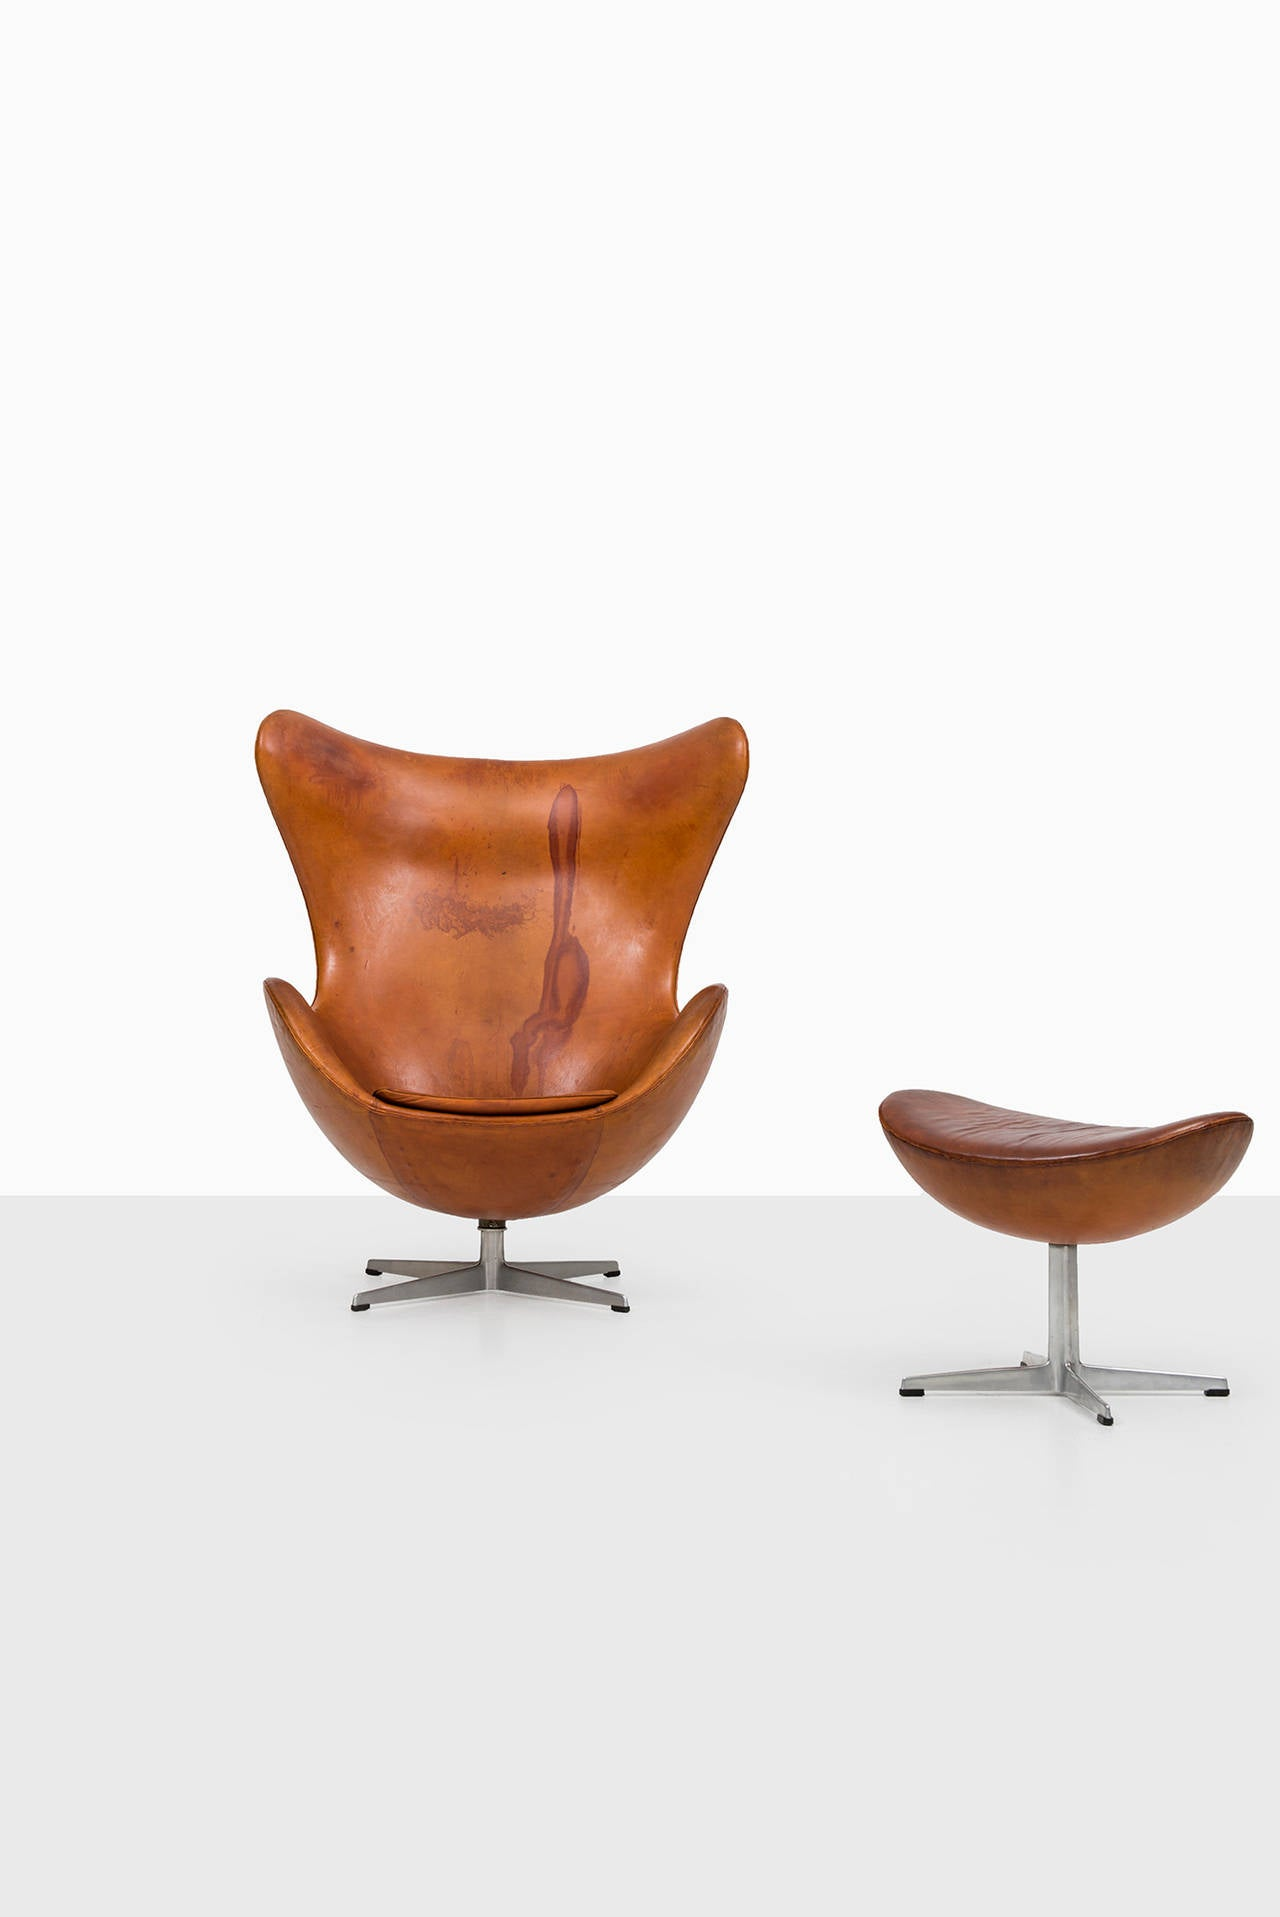 Arne jacobsen egg chair leather - Arne Jacobsen Egg Chair In Original Cognac Brown Leather By Fritz Hansen 3